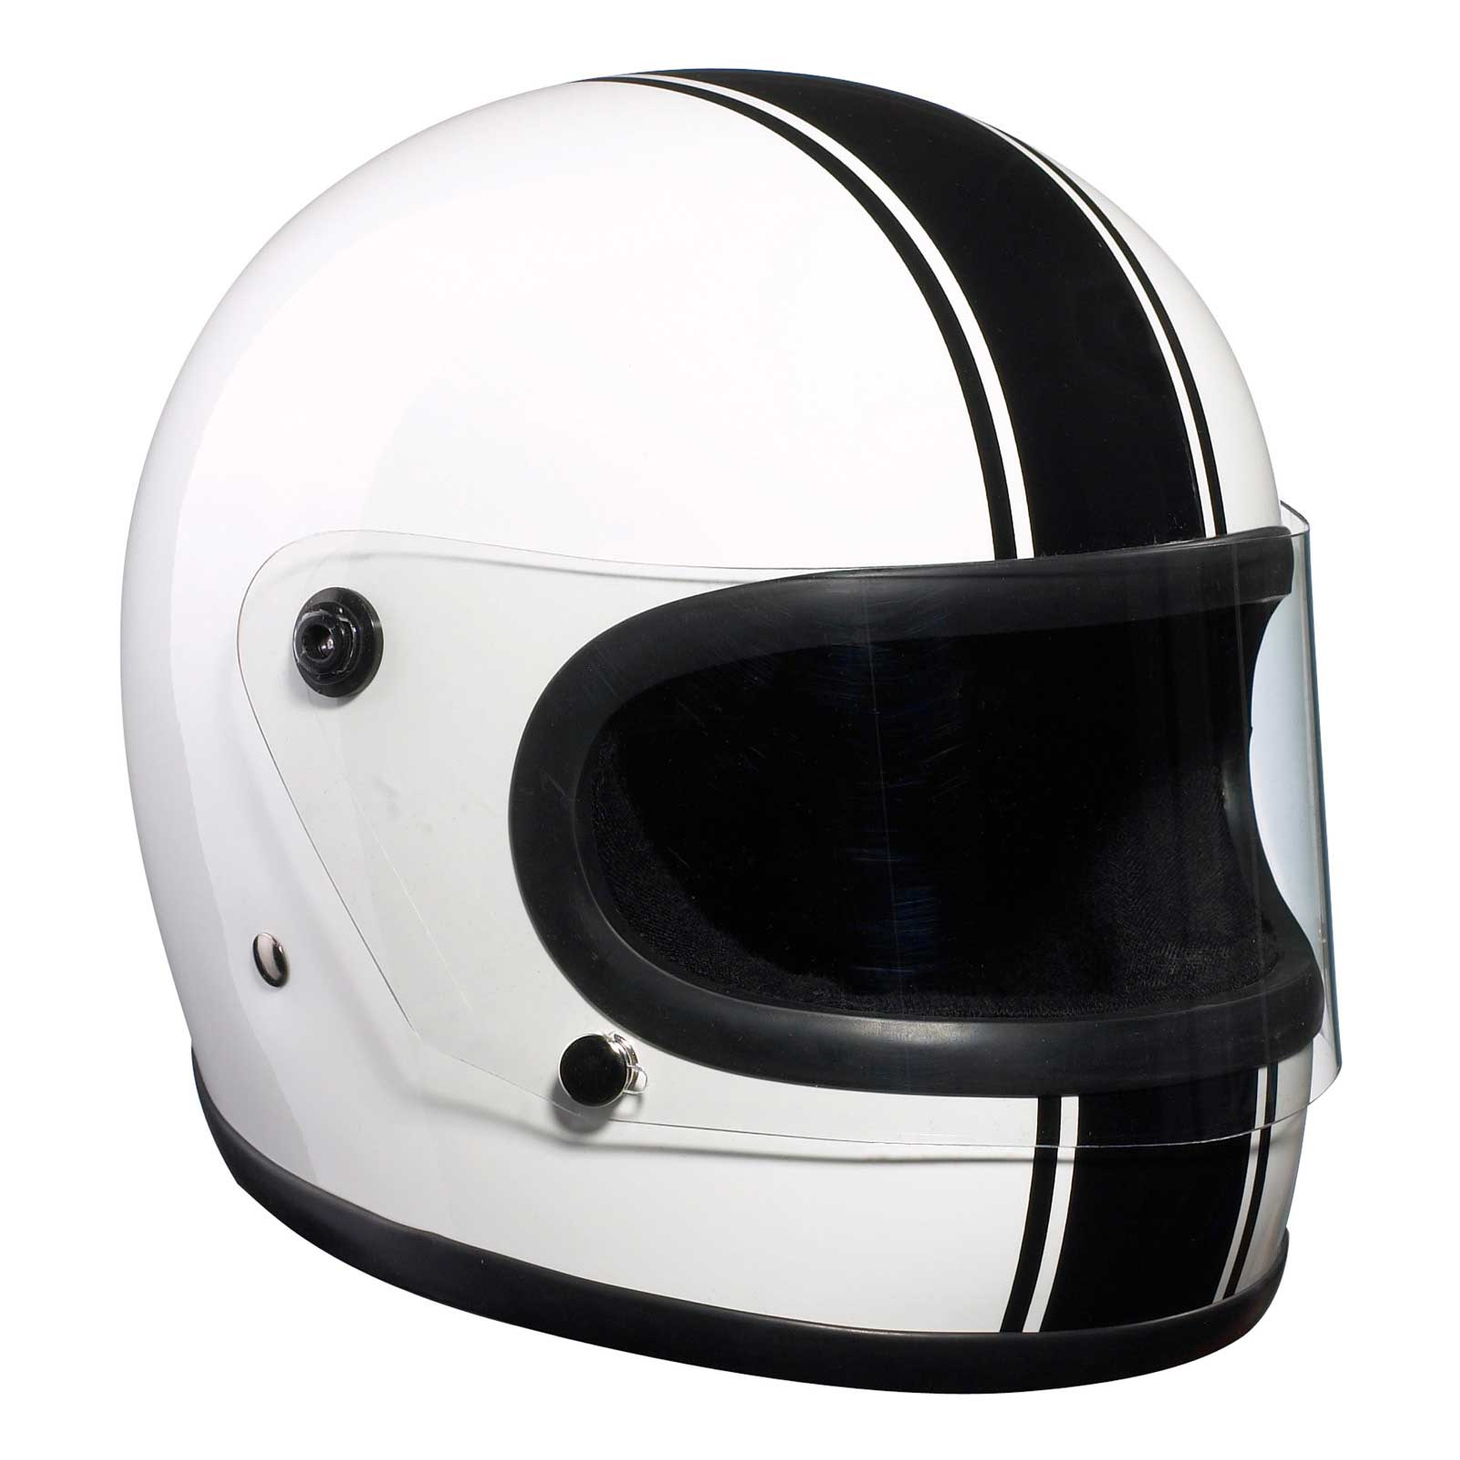 Bandit - Integral - New Original Motorcycle Helmet - Full Face - Fibreglass Shell – Picture 2